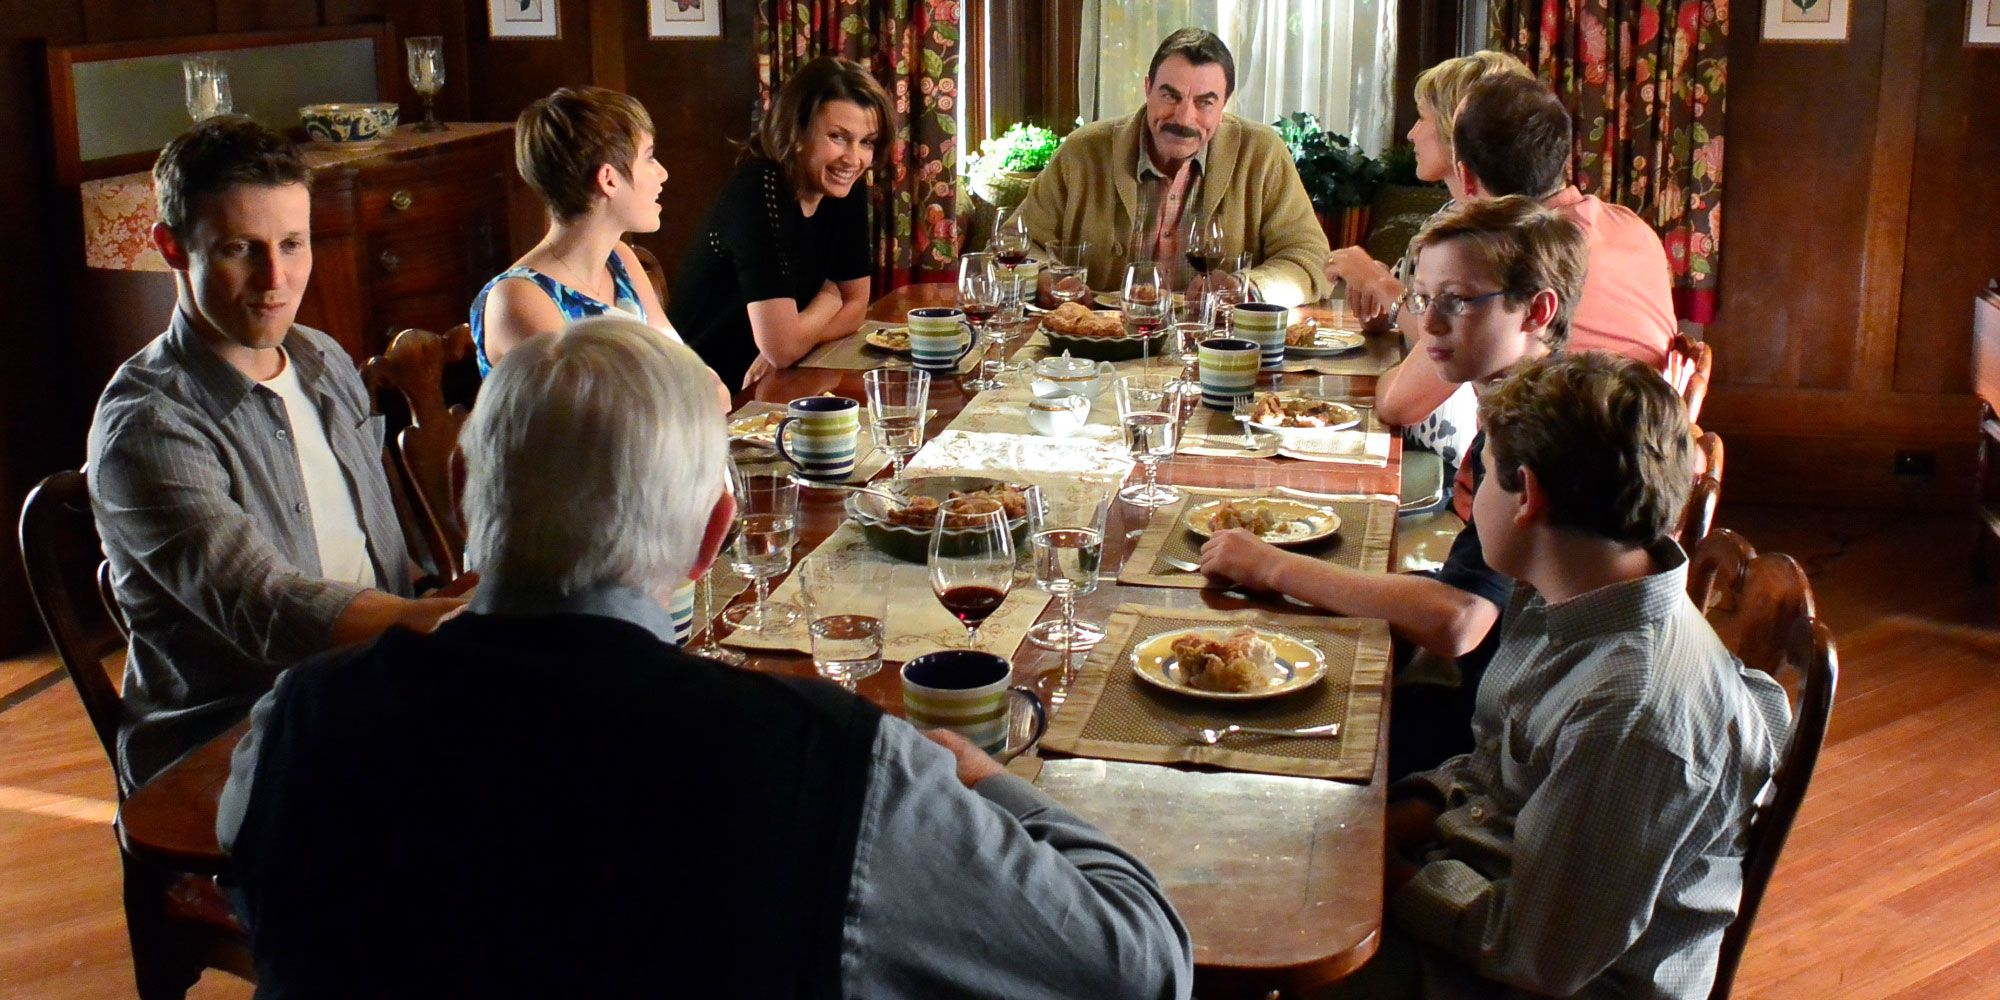 'Blue Bloods' Star Bridget Moynahan Says Those Family Dinner Scenes Have a Hidden Meaning